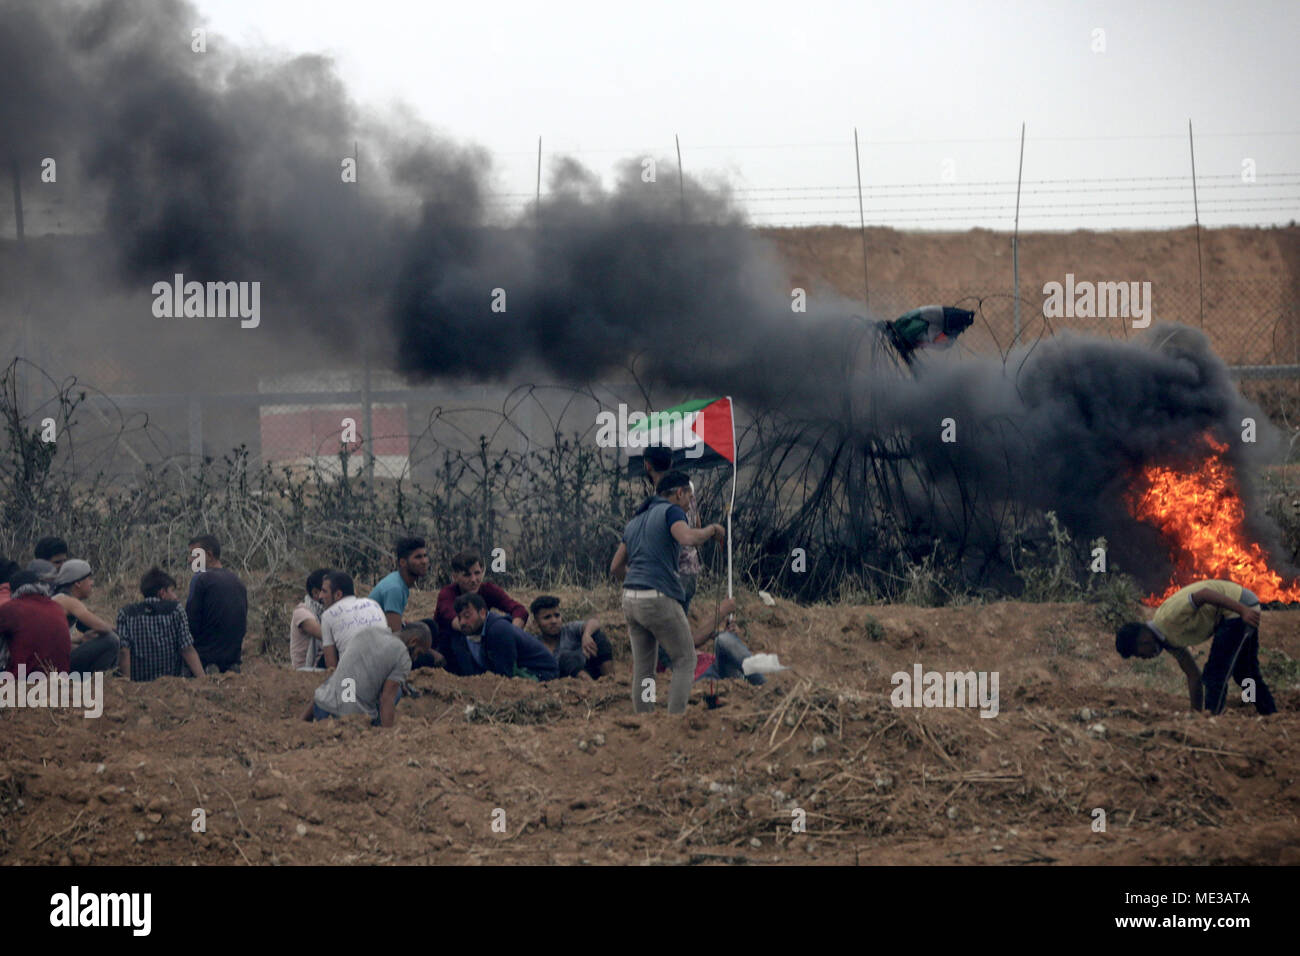 A Palestinian Protester Throw Stones During Clashes Near The Border